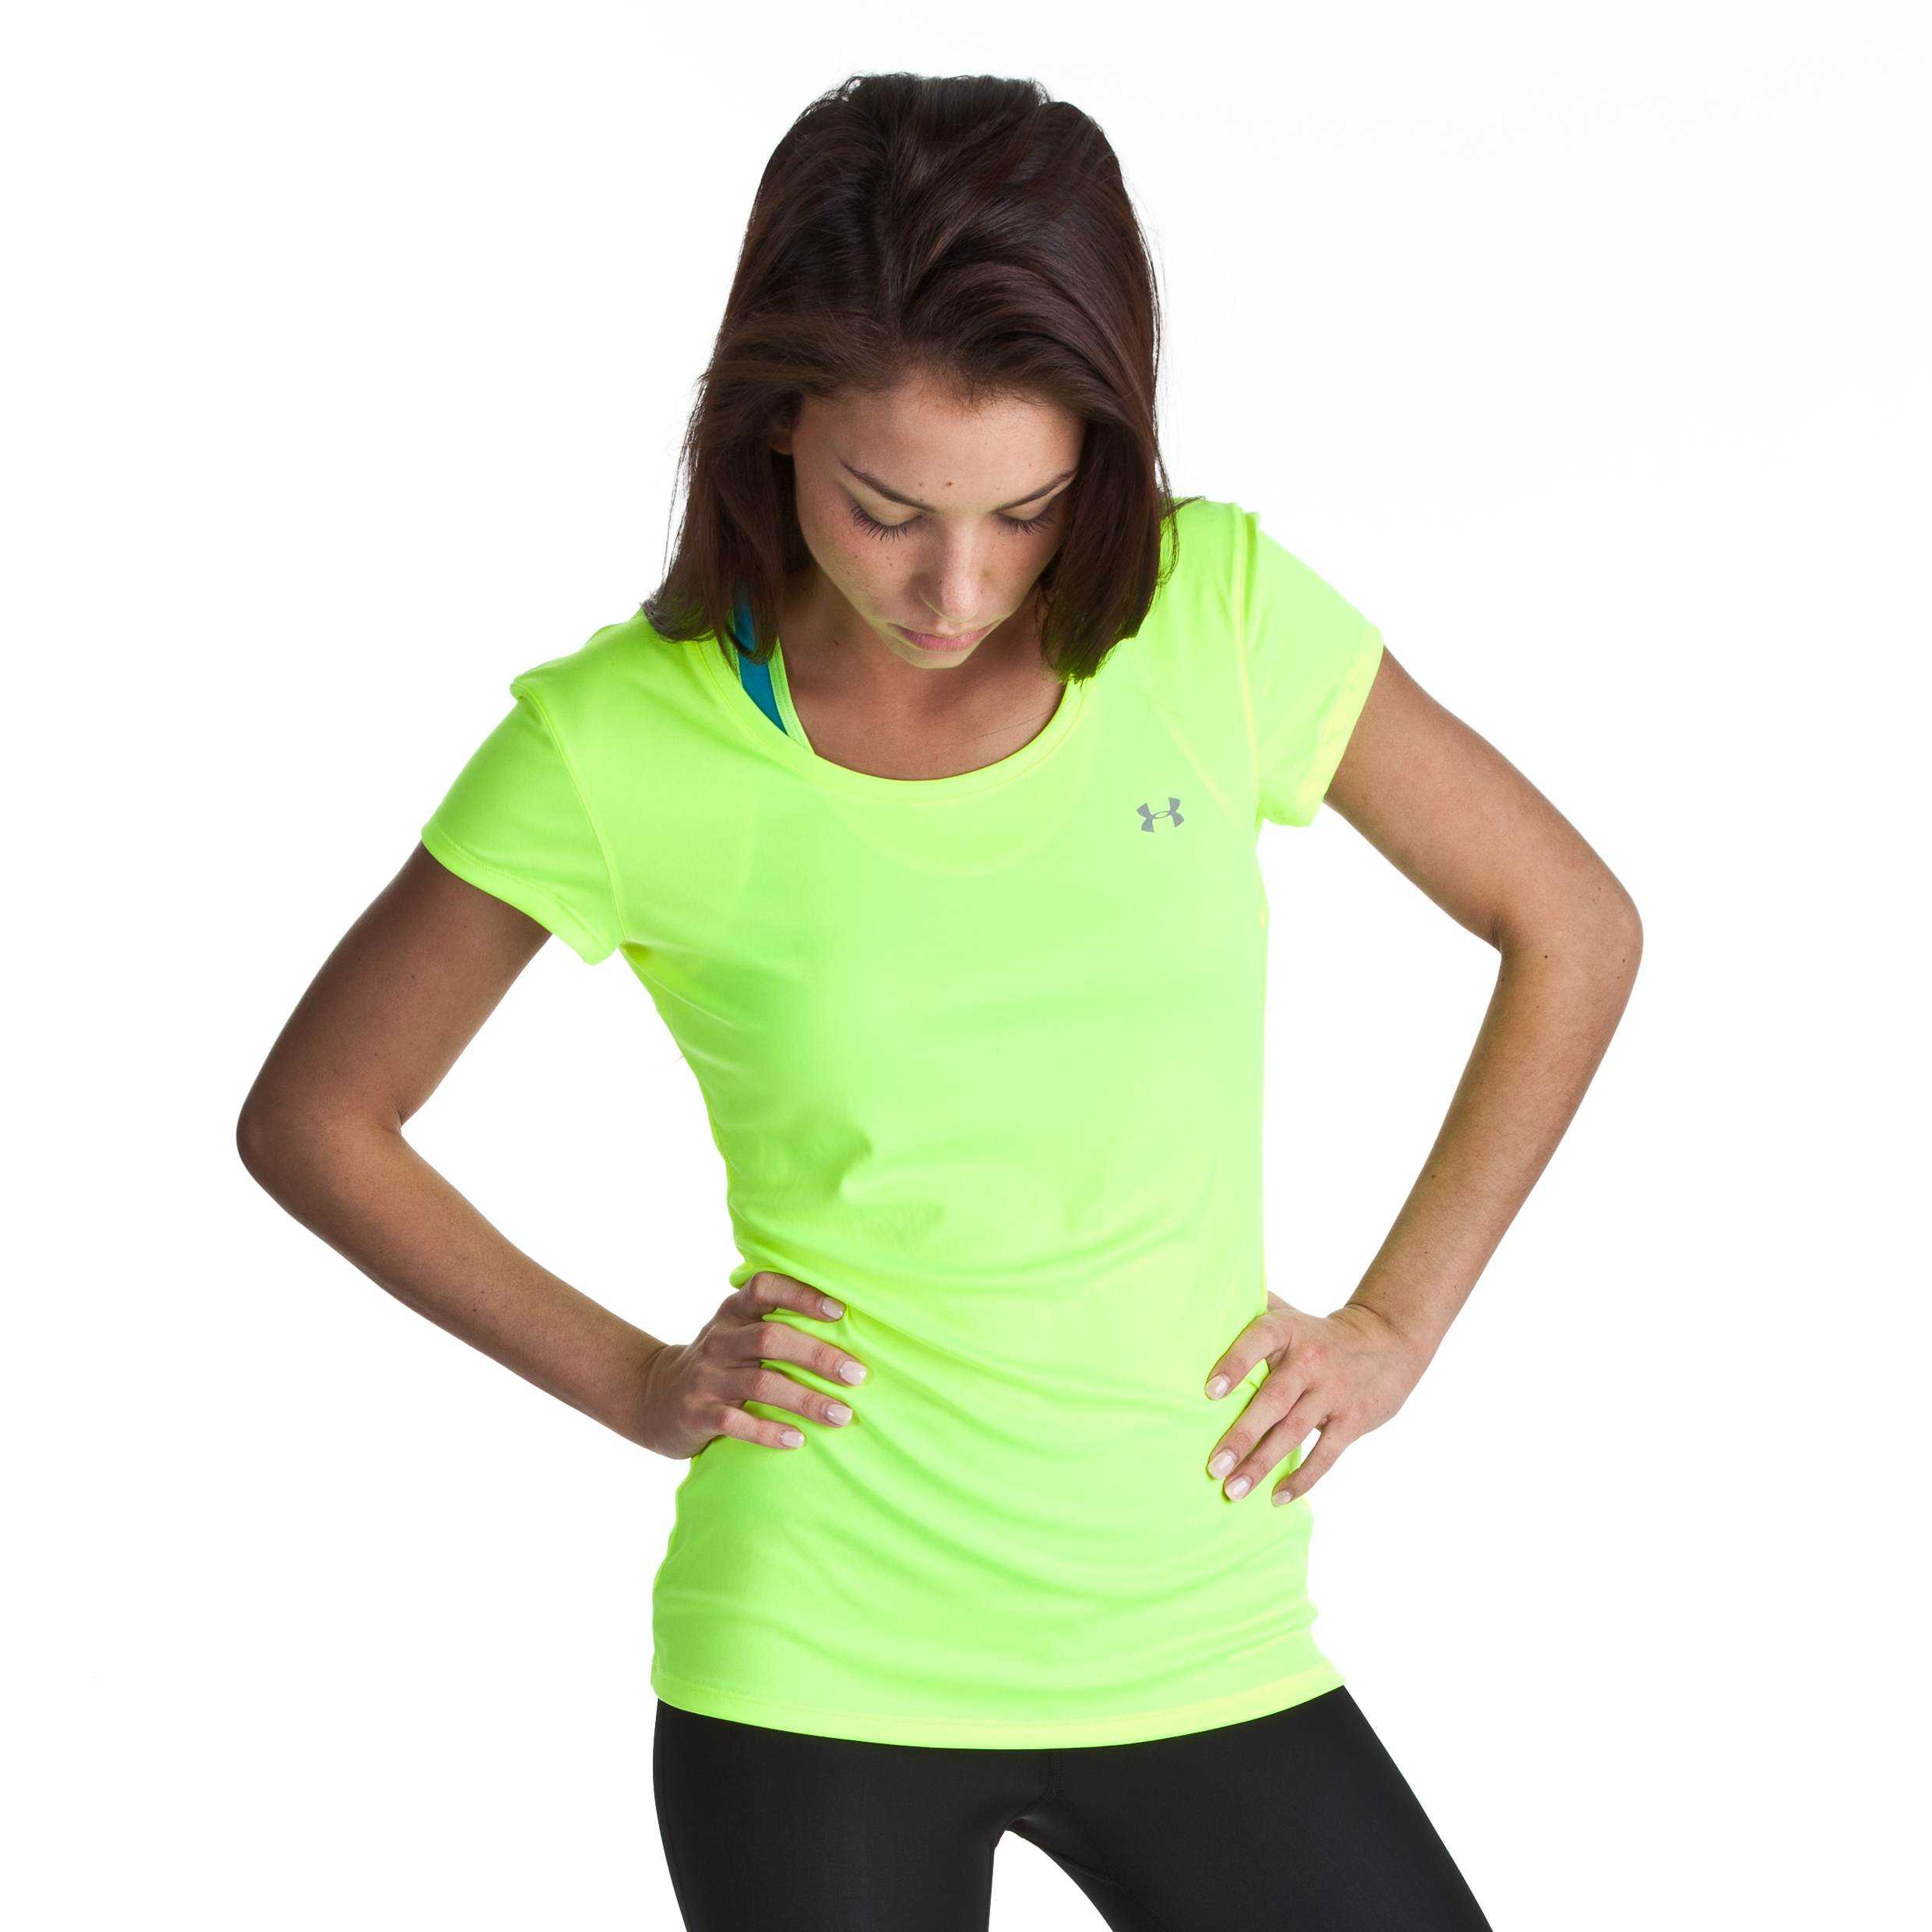 Under Armour Heat gear Flyweight Tee - High Vis Yellow/Reflective - Womens